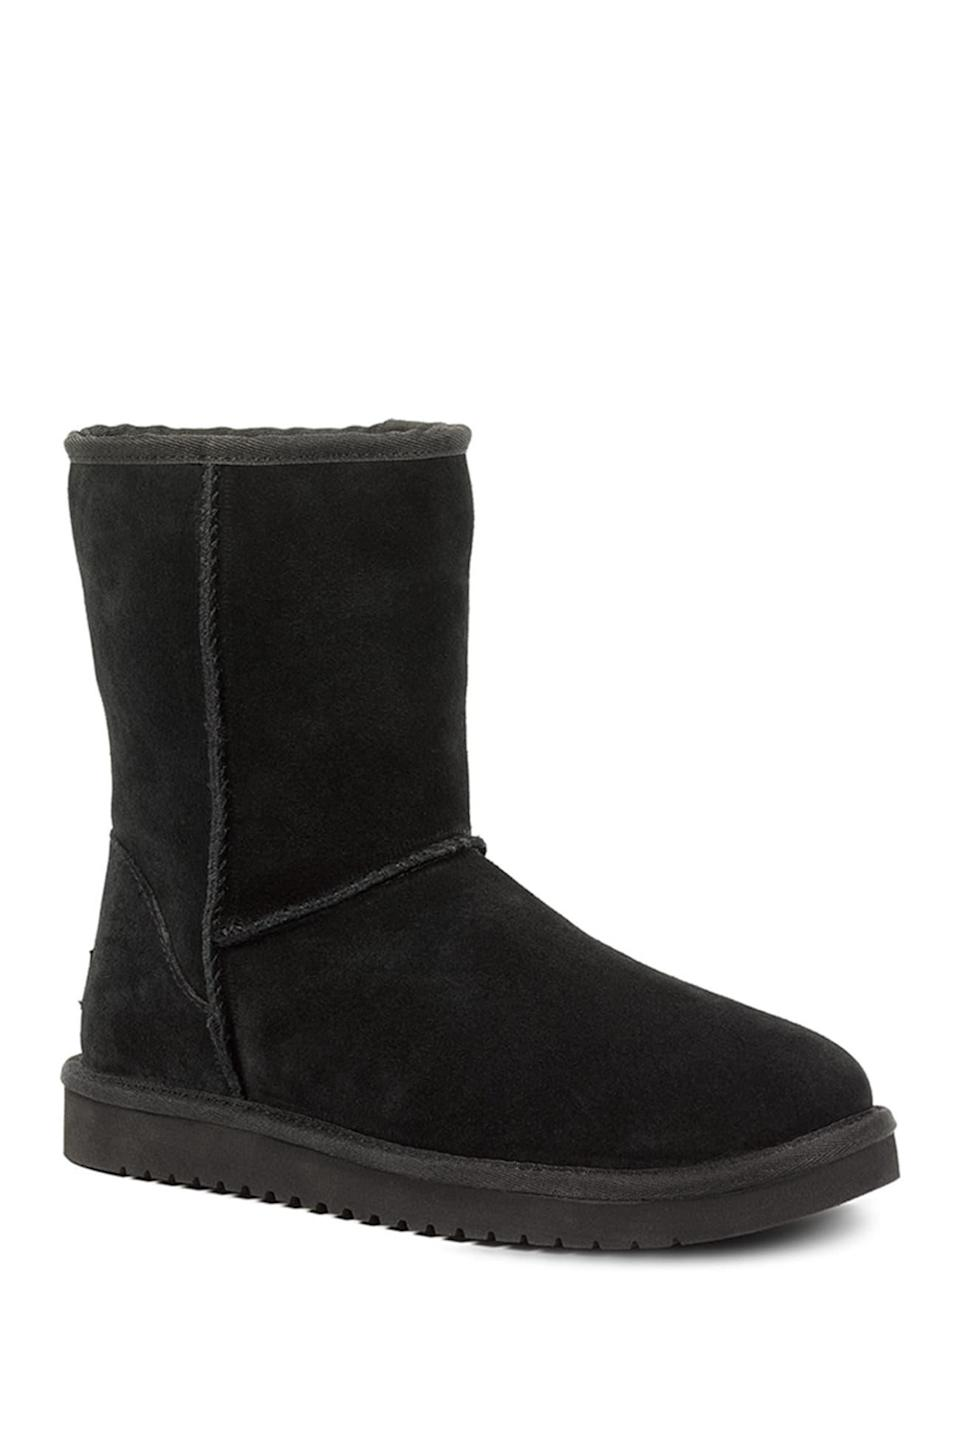 """<br><br><strong>Koolaburra by Ugg</strong> Classic Short Genuine Shearling & Faux Fur Lined Boot, $, available at <a href=""""https://go.skimresources.com/?id=30283X879131&url=https%3A%2F%2Fwww.nordstromrack.com%2Fs%2Fkoolaburra-by-ugg-classic-short-genuine-shearling-faux-fur-lined-boot-wide-width-available%2Fn2309010"""" rel=""""nofollow noopener"""" target=""""_blank"""" data-ylk=""""slk:Nordstrom Rack"""" class=""""link rapid-noclick-resp"""">Nordstrom Rack</a>"""